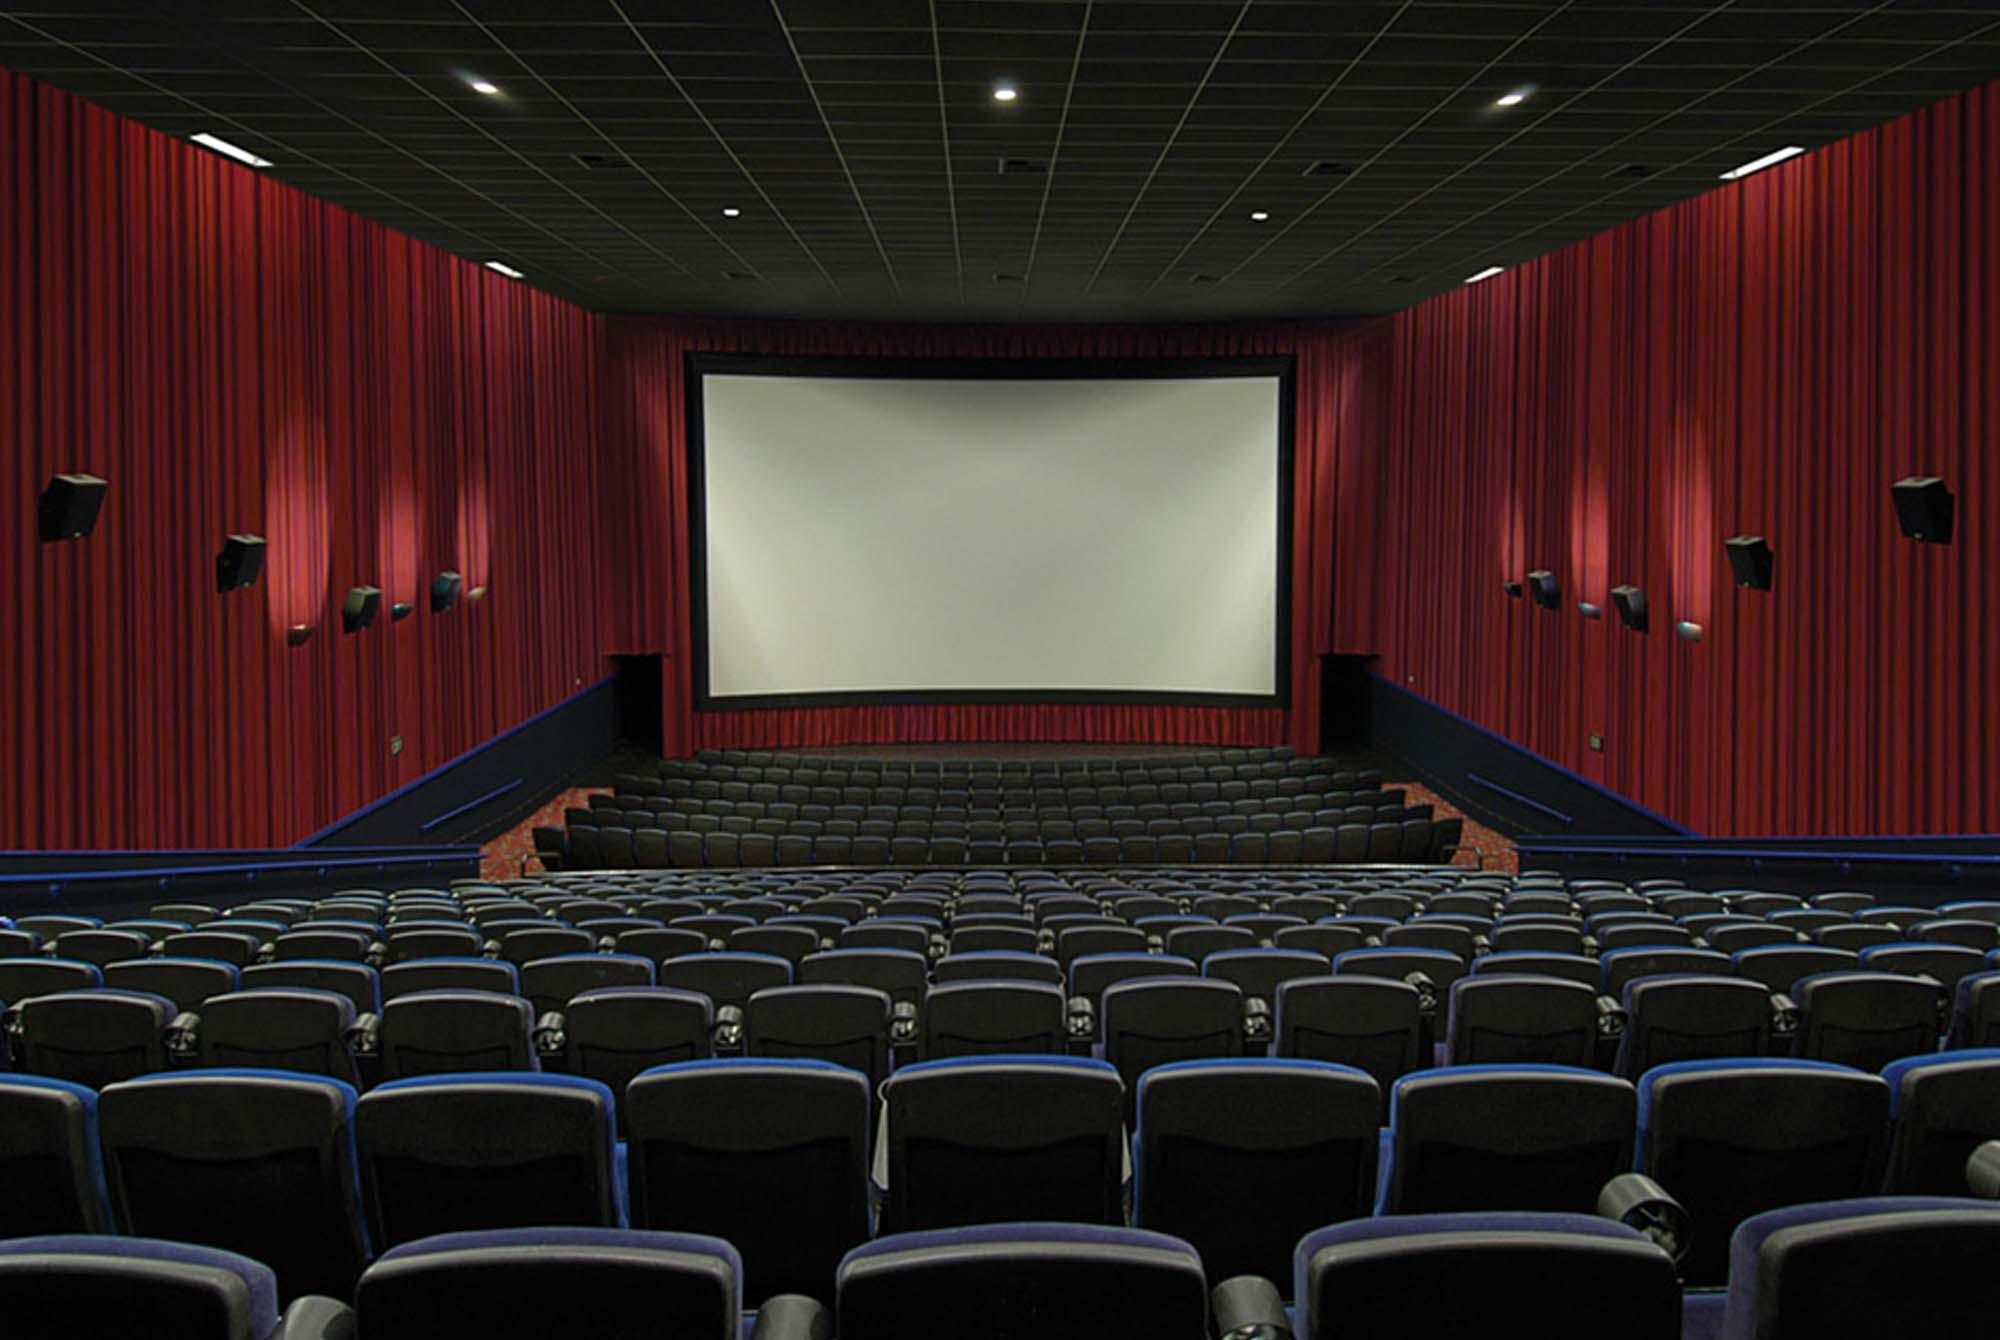 movie-screen-background-image_01